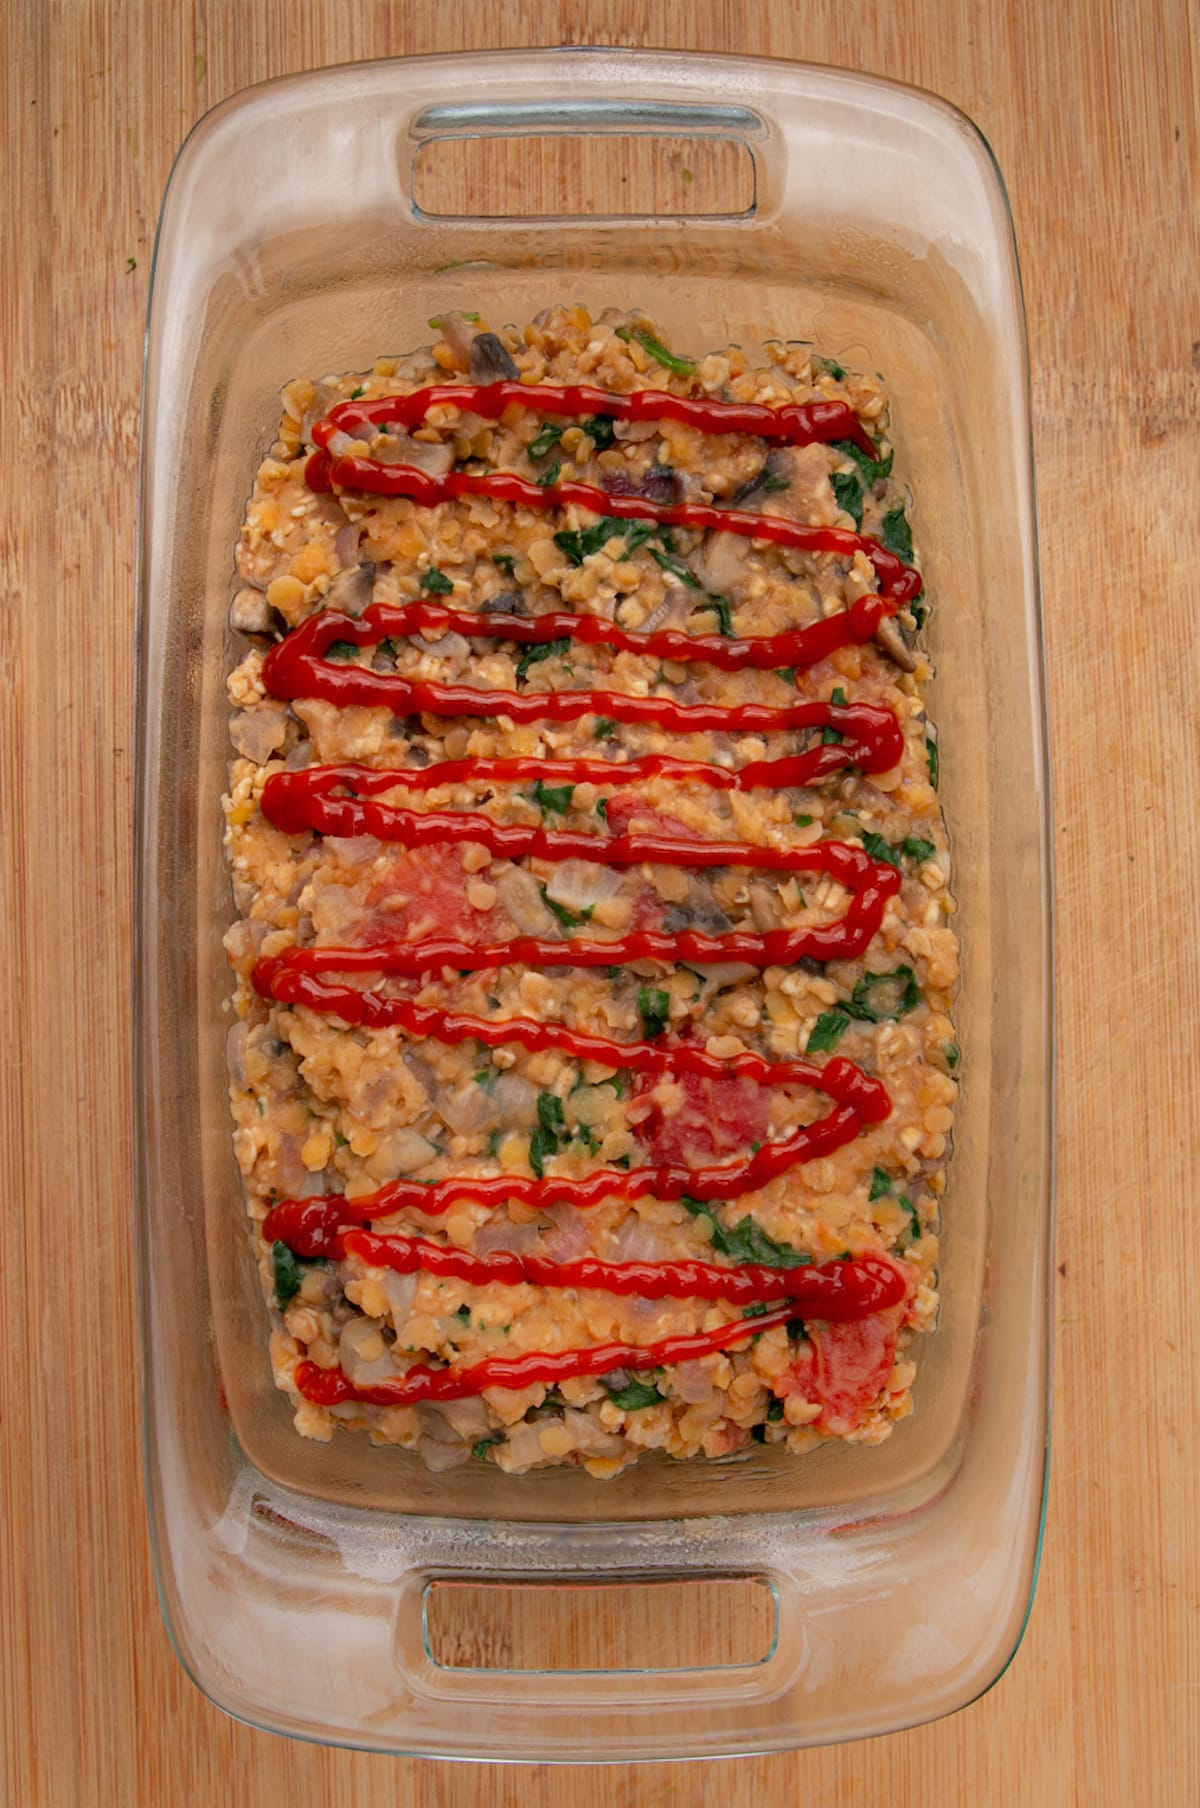 lentil loaf in baking dish ready to be baked